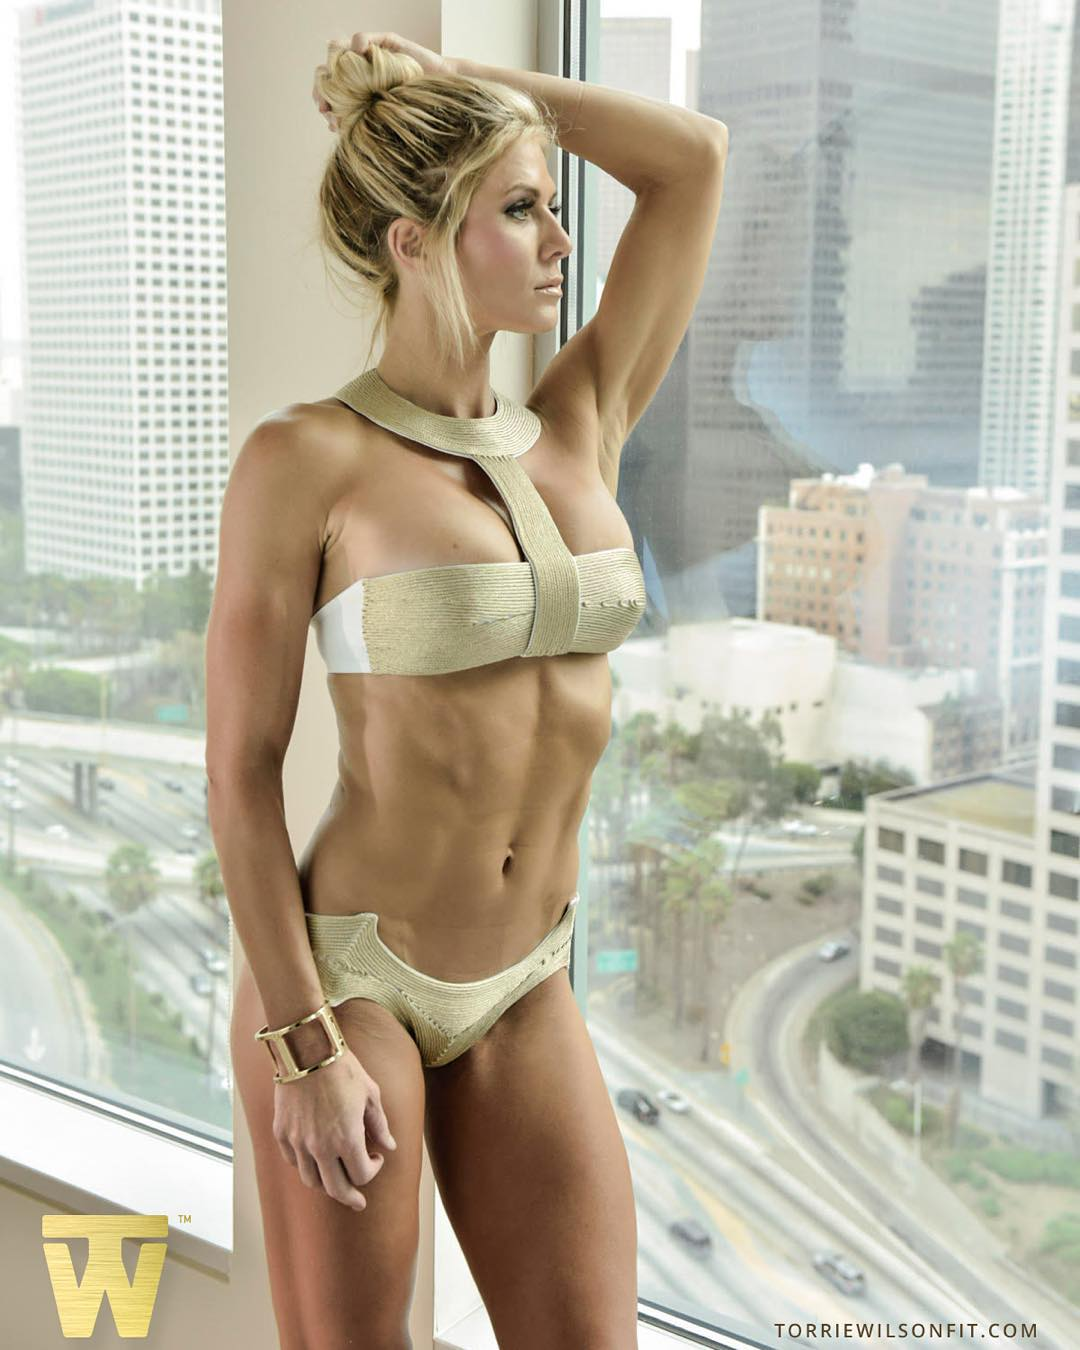 Congratulate, your Torrie wilson strip geisha agree with